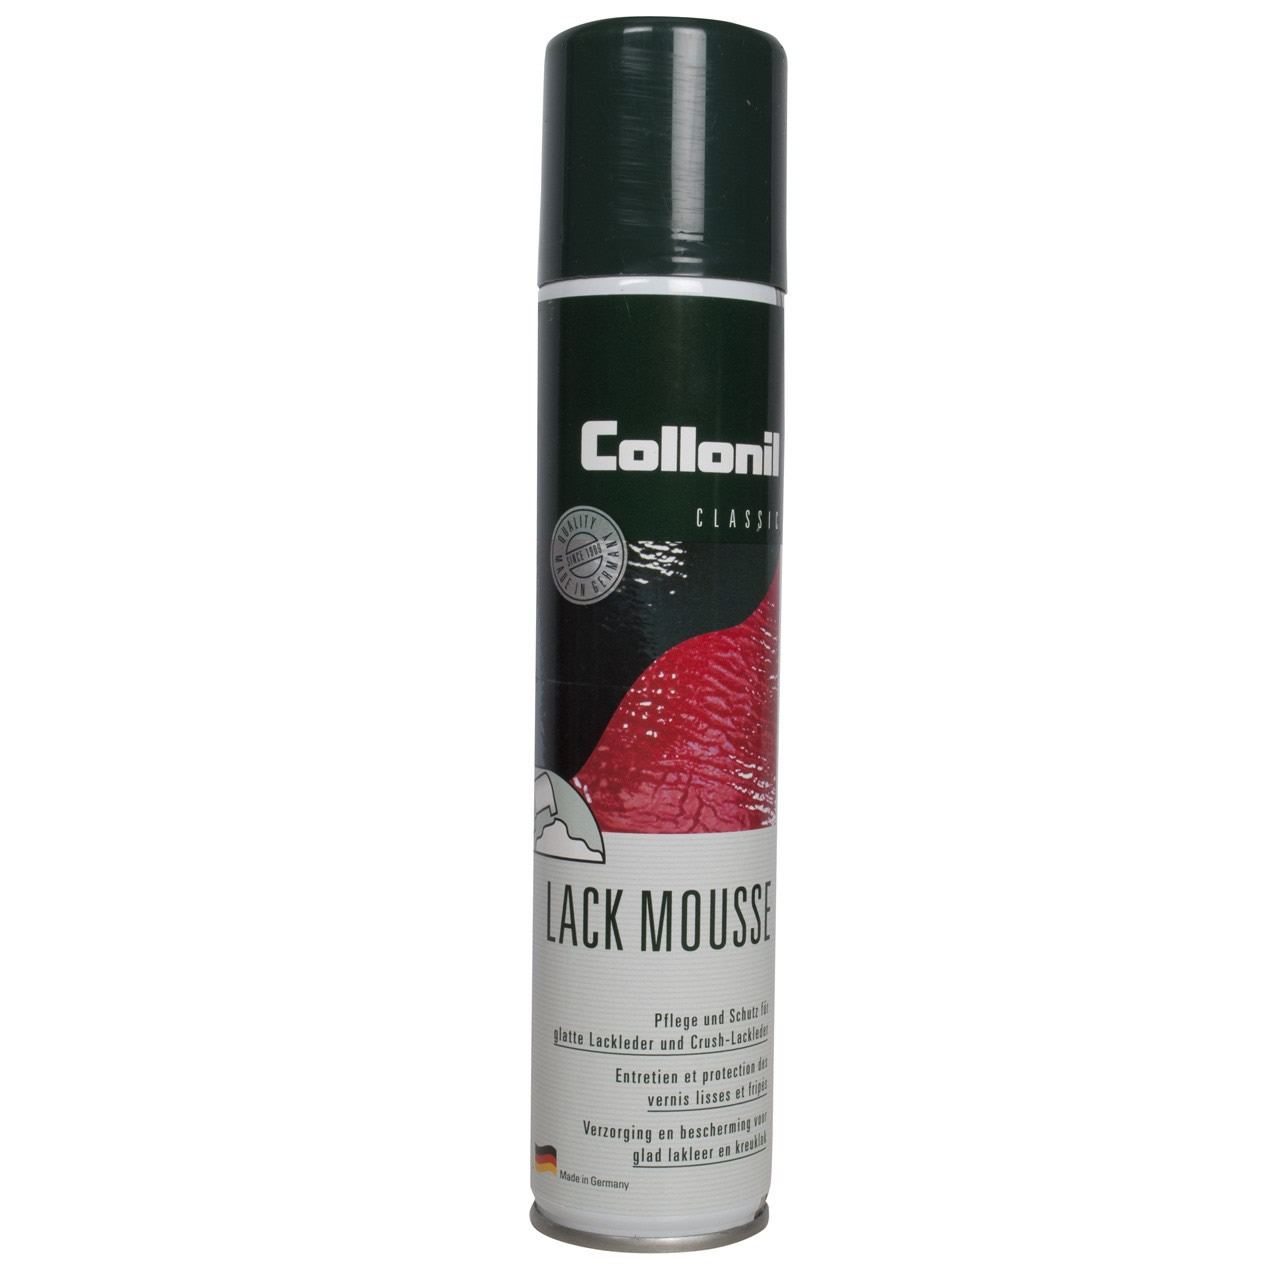 Collonil Lack Mousse 200ml